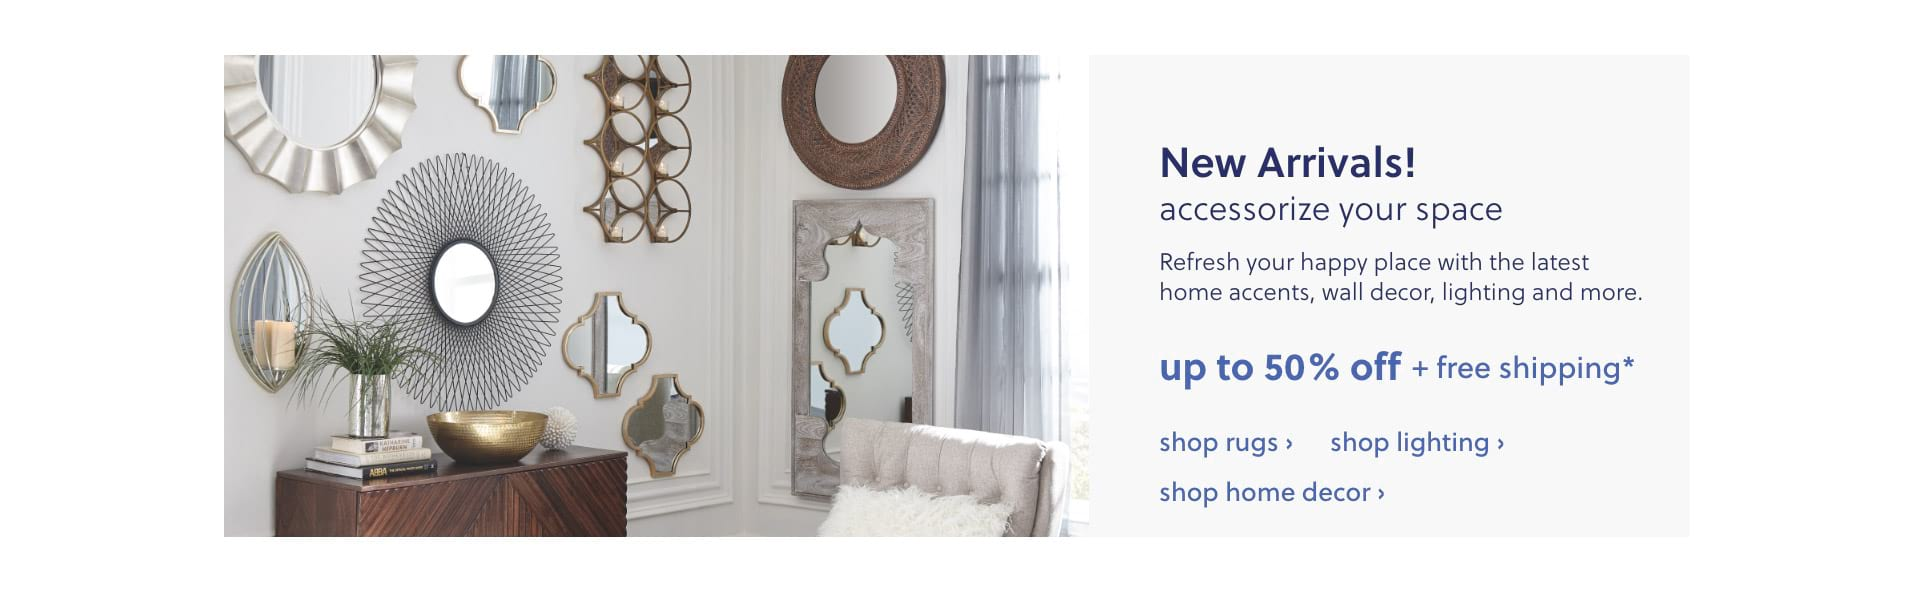 New Arrivals in Home Accents, Wall Decor, Lighting, Rugs